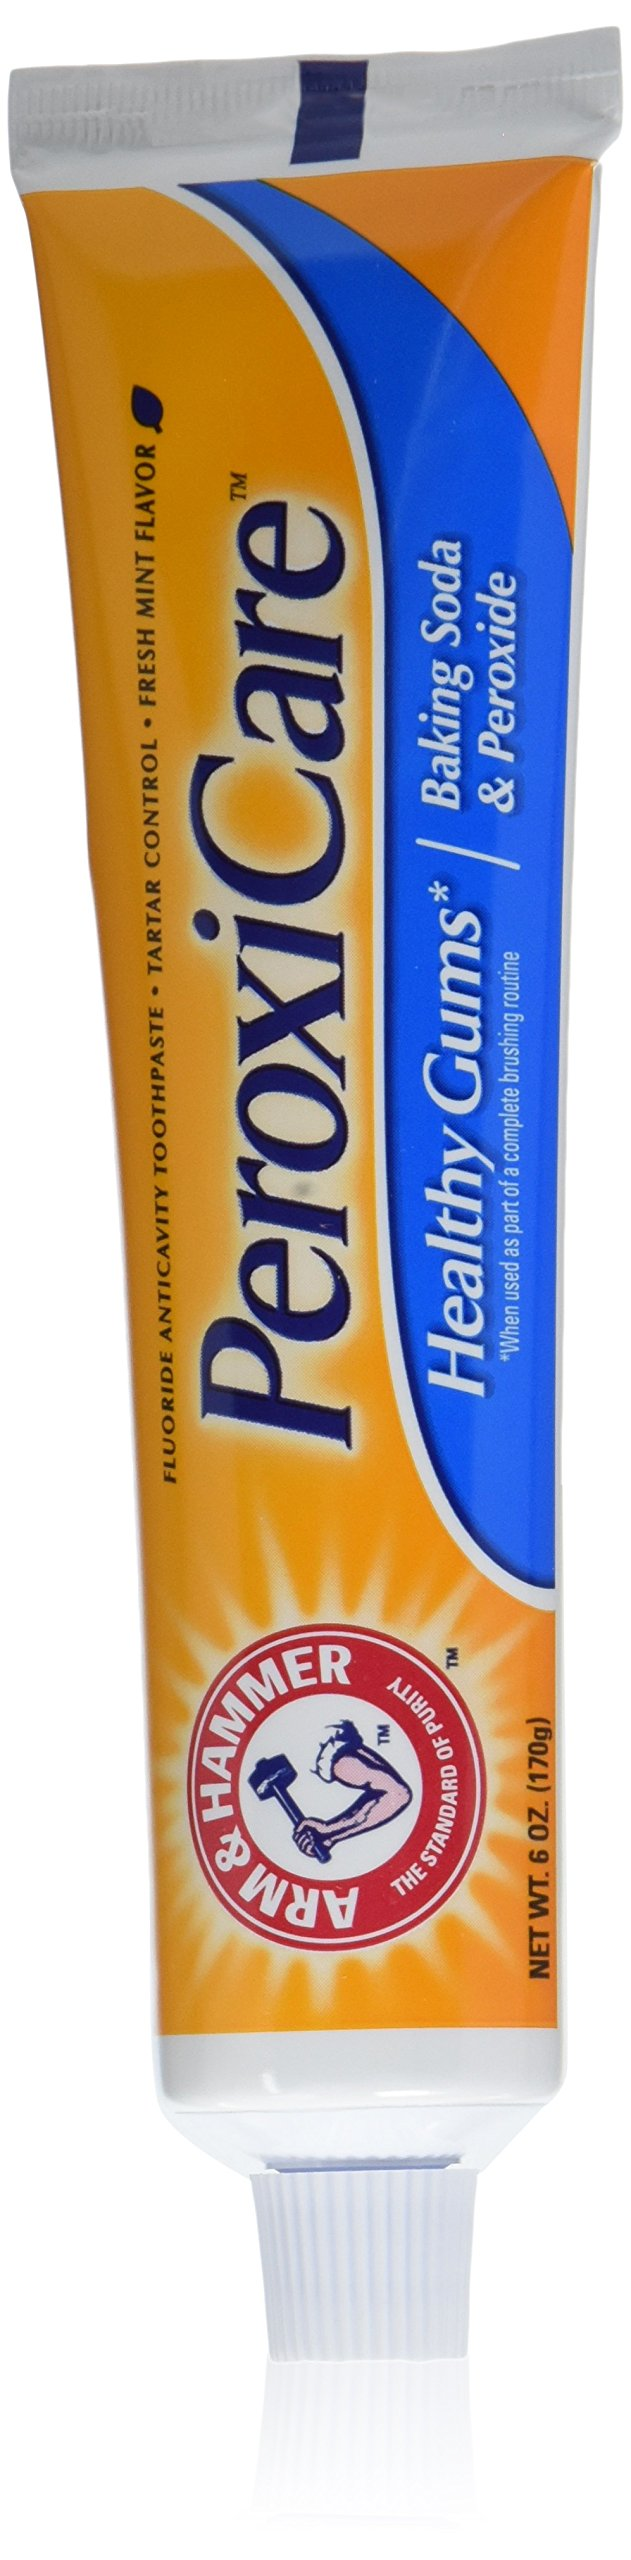 Arm & Hammer PeroxiCare Deep Clean Toothpaste, 6 Oz (Pack of 6) (Packaging May Vary)